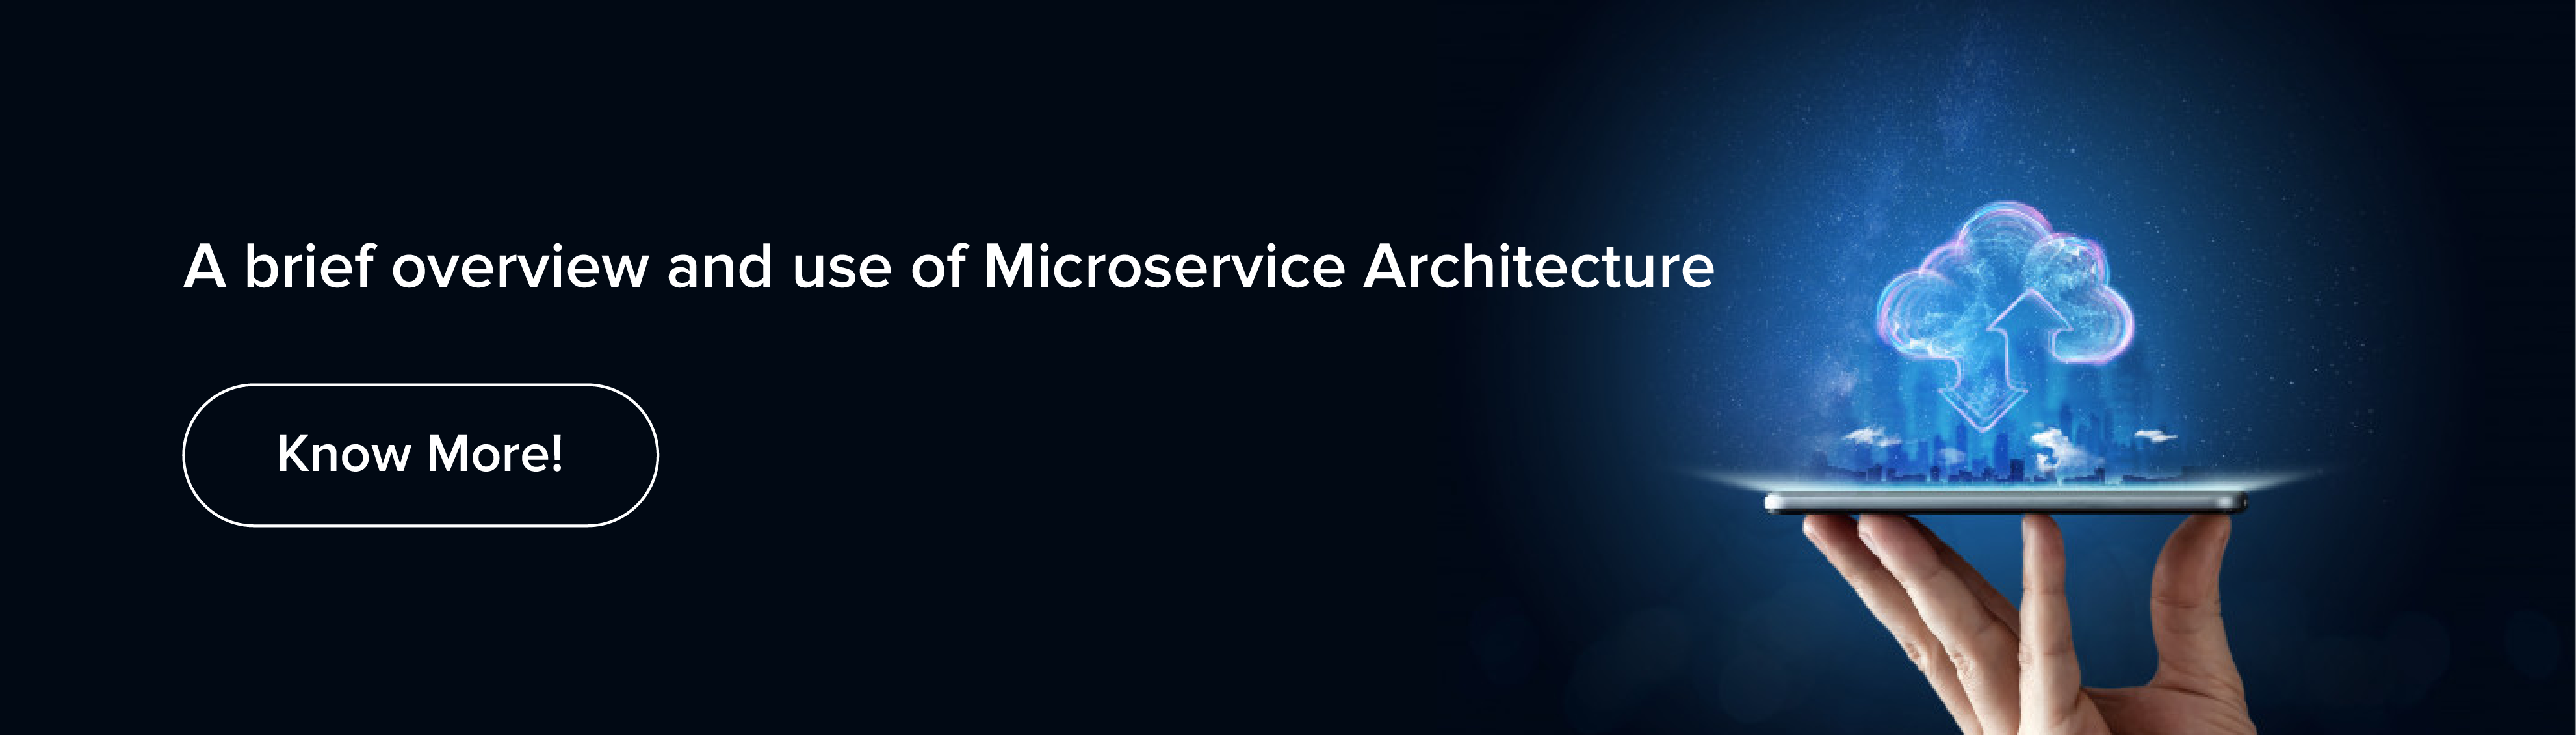 use of Microservice Architecture